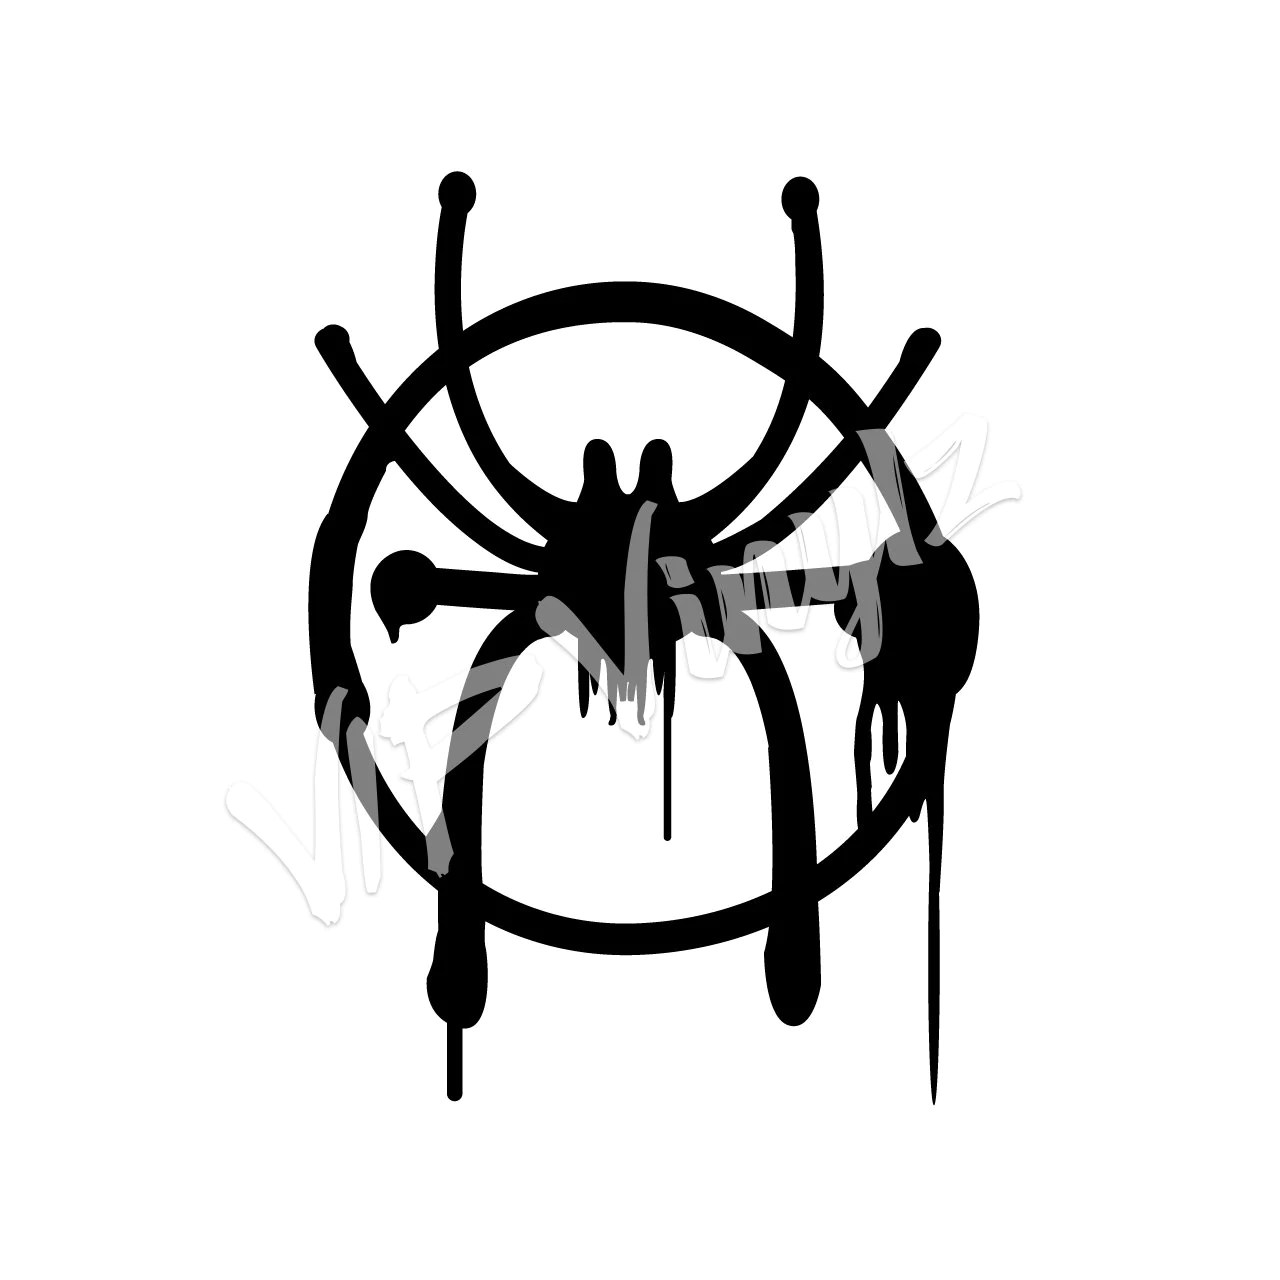 Miles Morales Spider-Man Symbol from Spider-Man: Into the